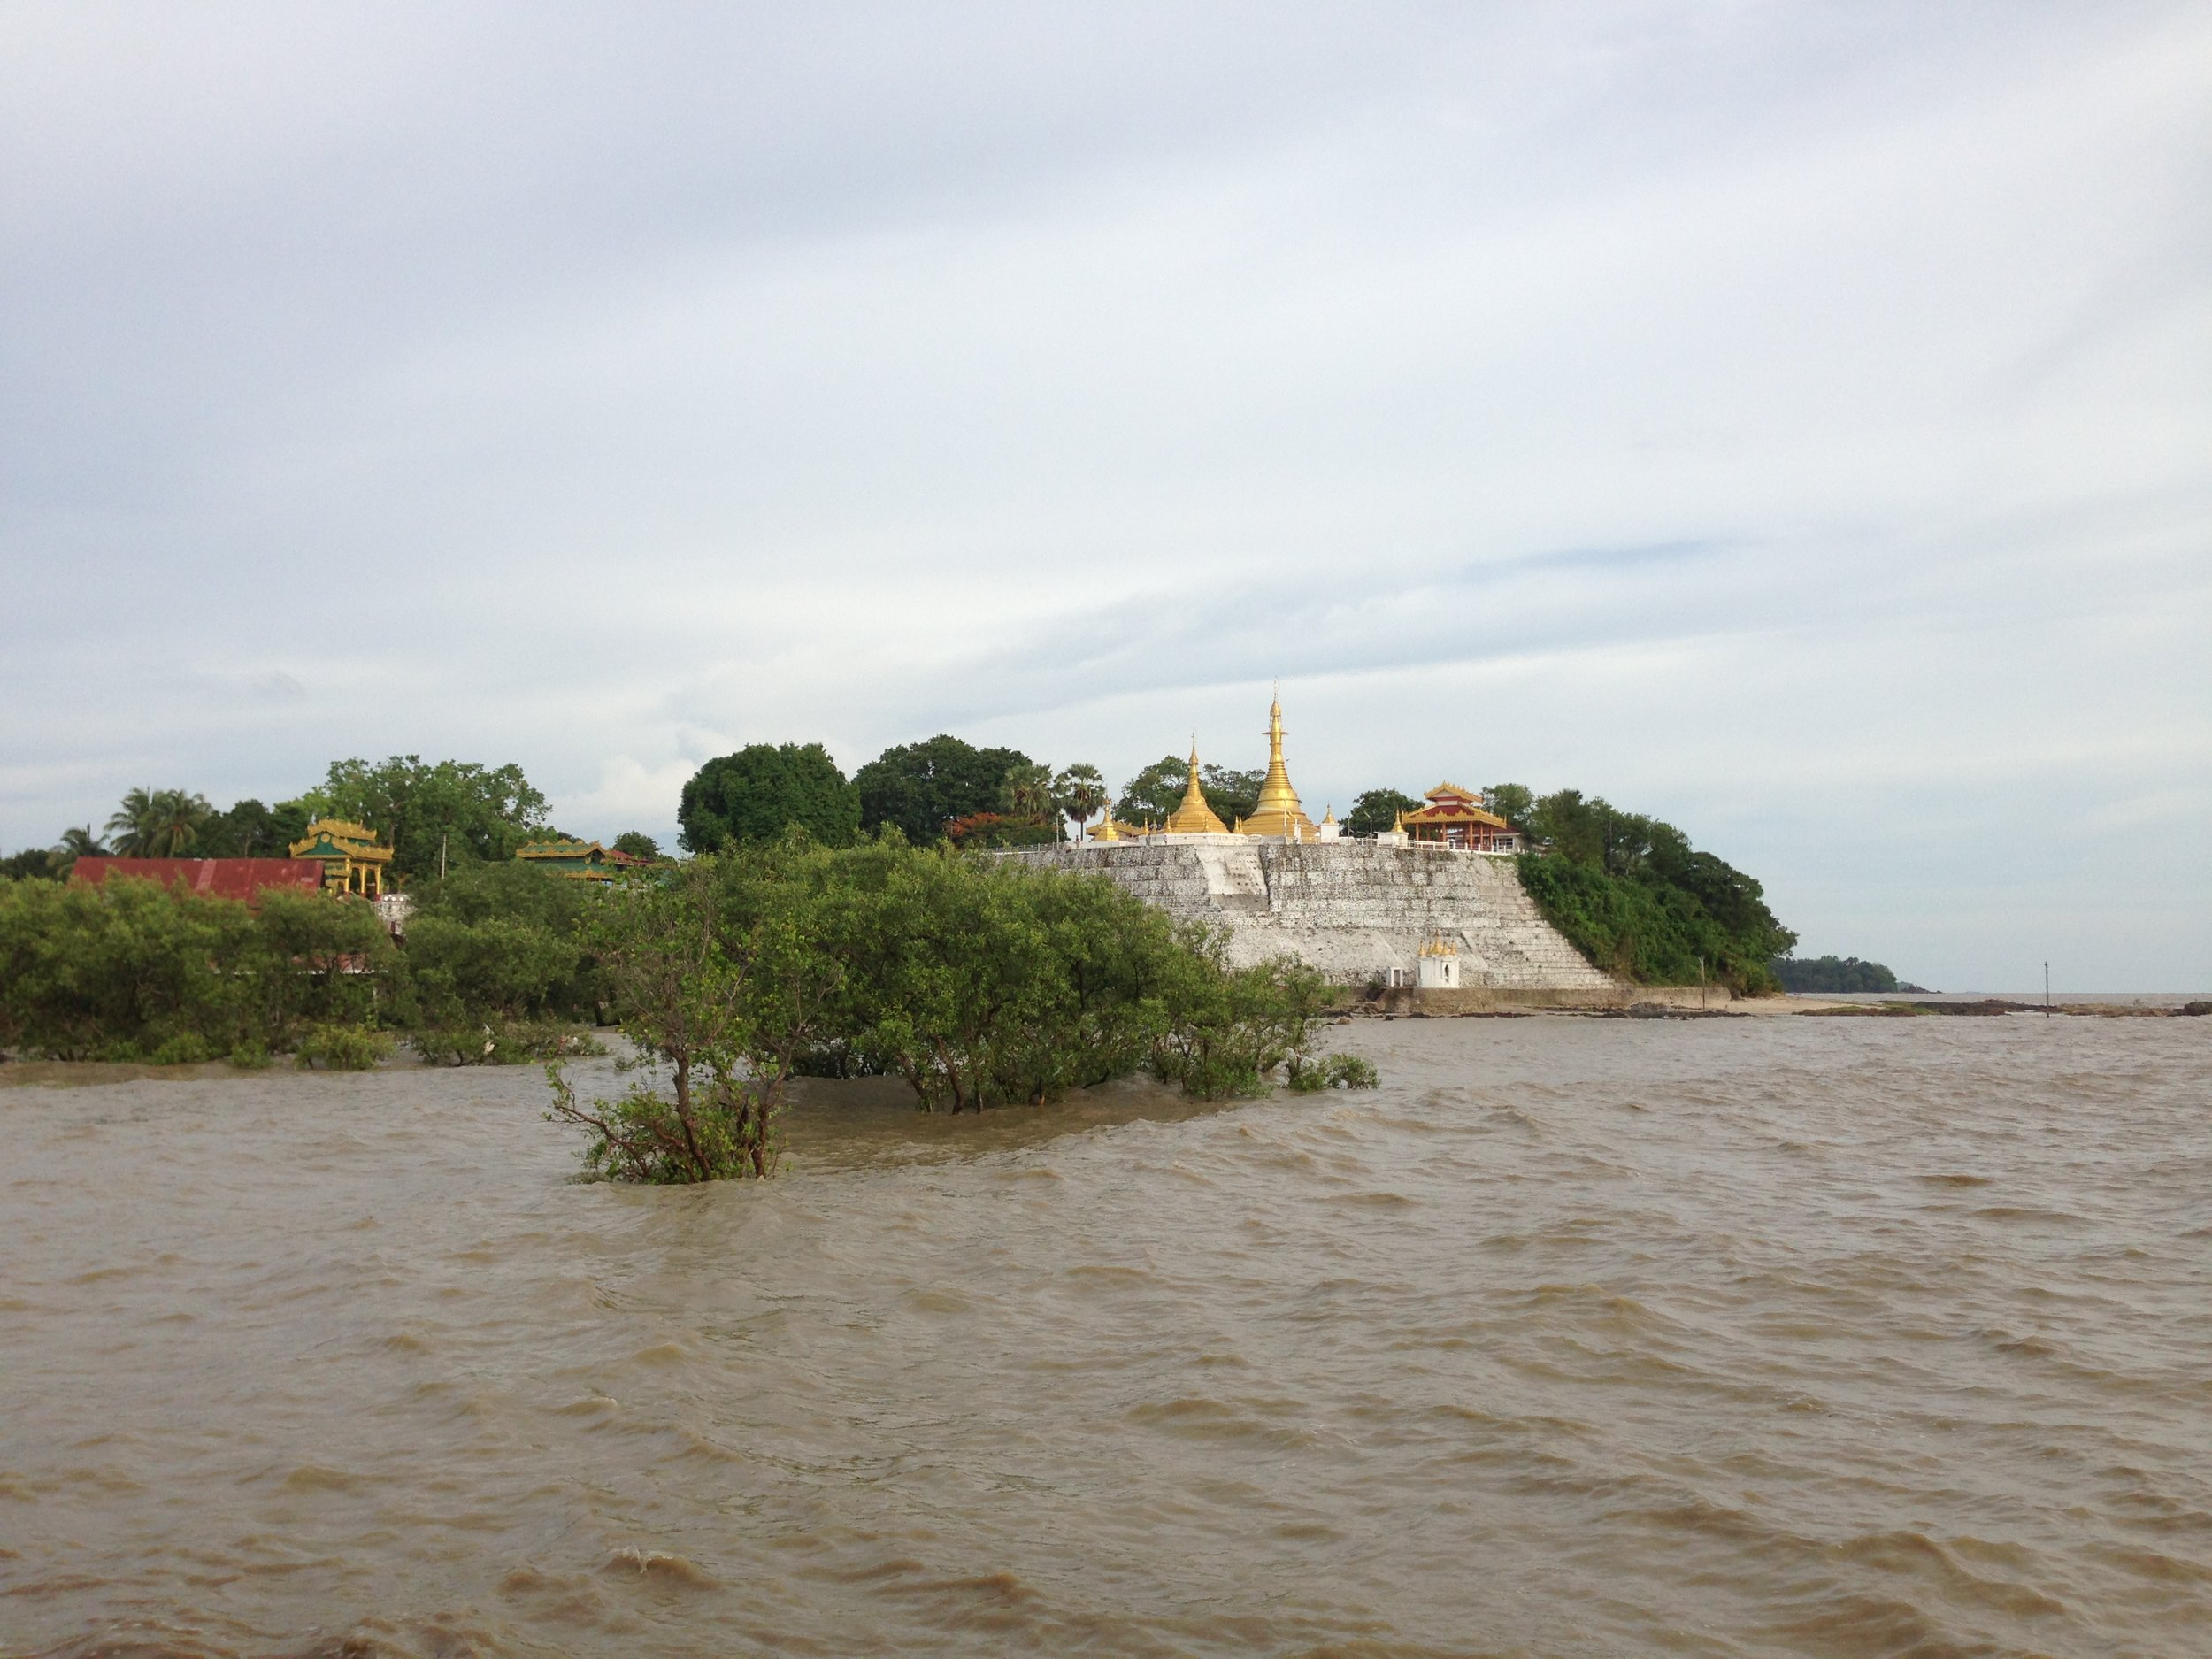 Temple on the Salween River (Bian Yongmin, 2017)